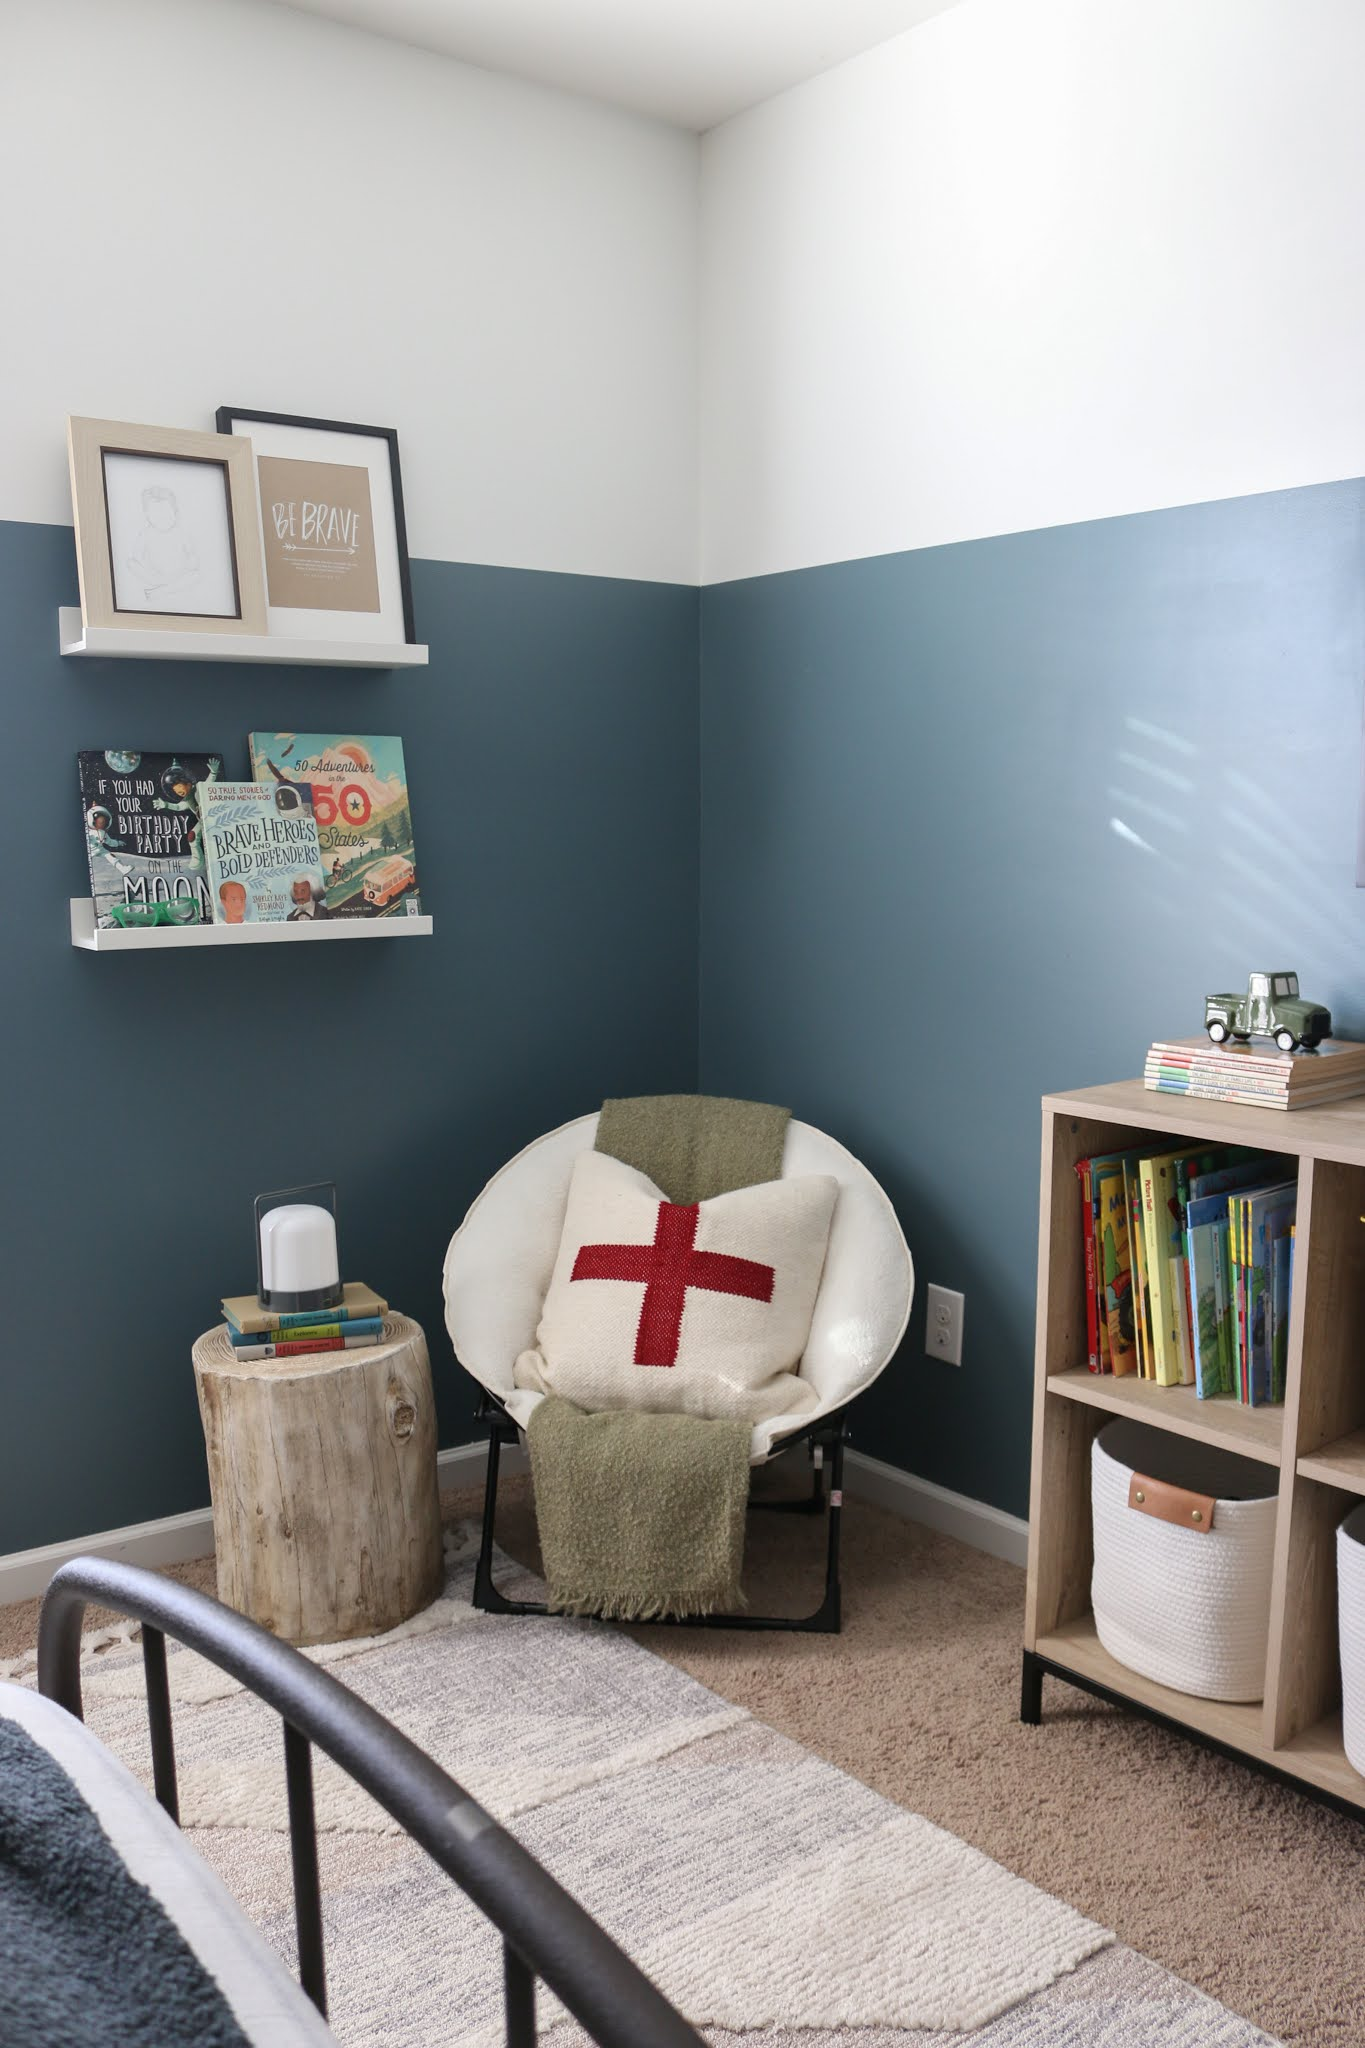 A Classic Modern Room for Dax + How To Design A Kid's Room that You'll Both Love!